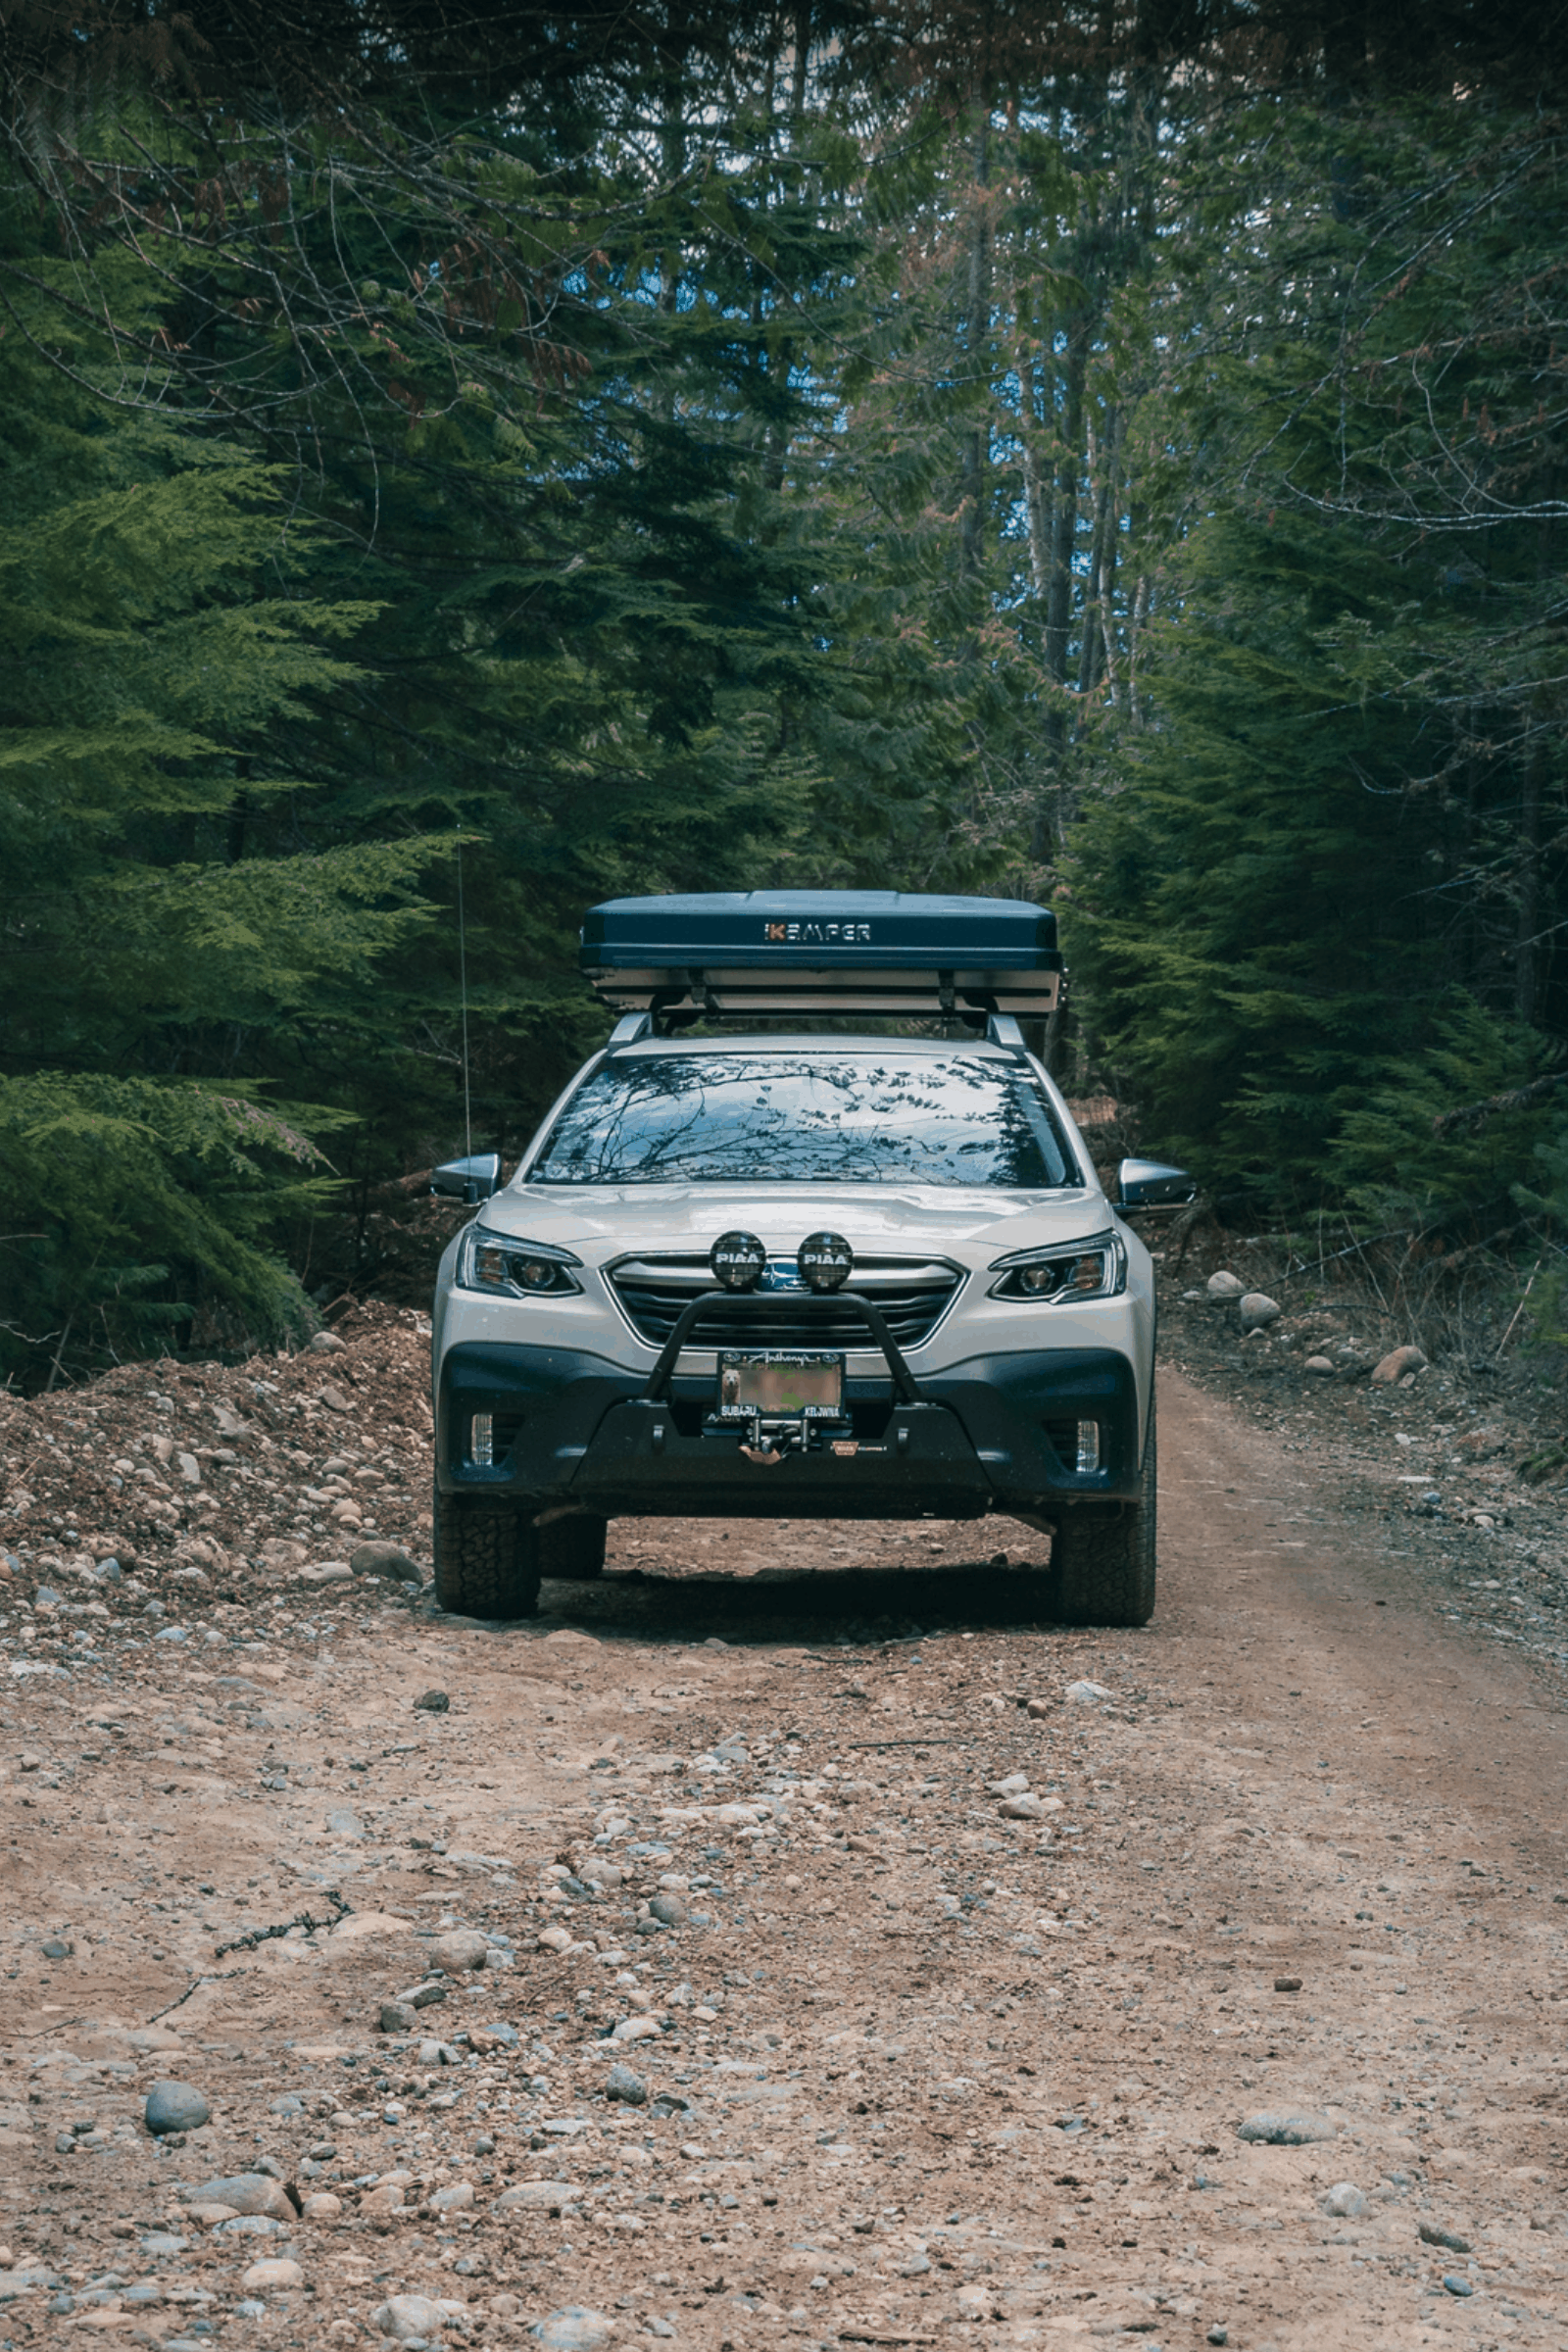 free camping off road